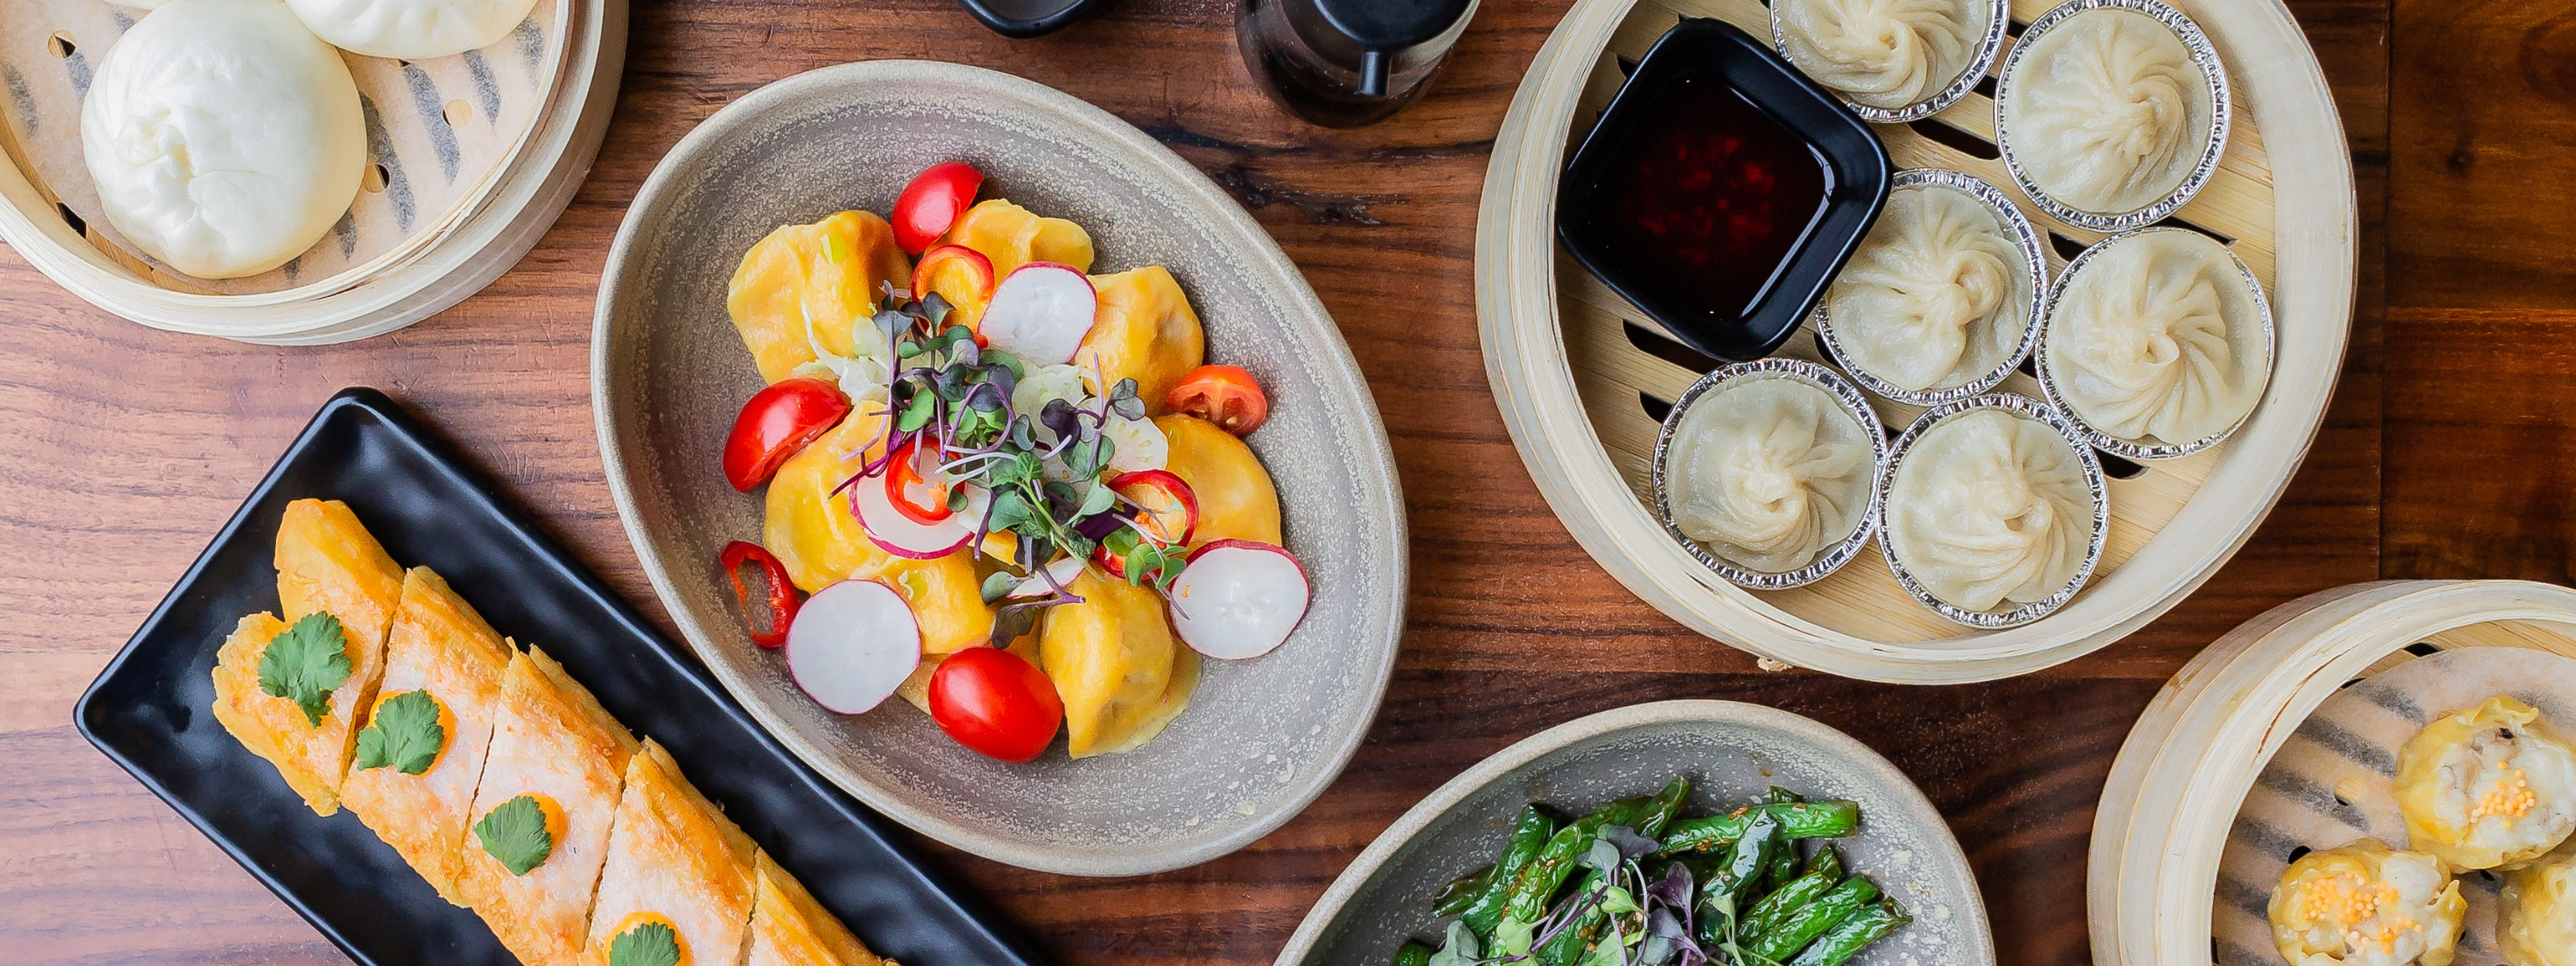 The San Francisco Neighborhood Delivery & Takeout Directory - San Francisco - The Infatuation